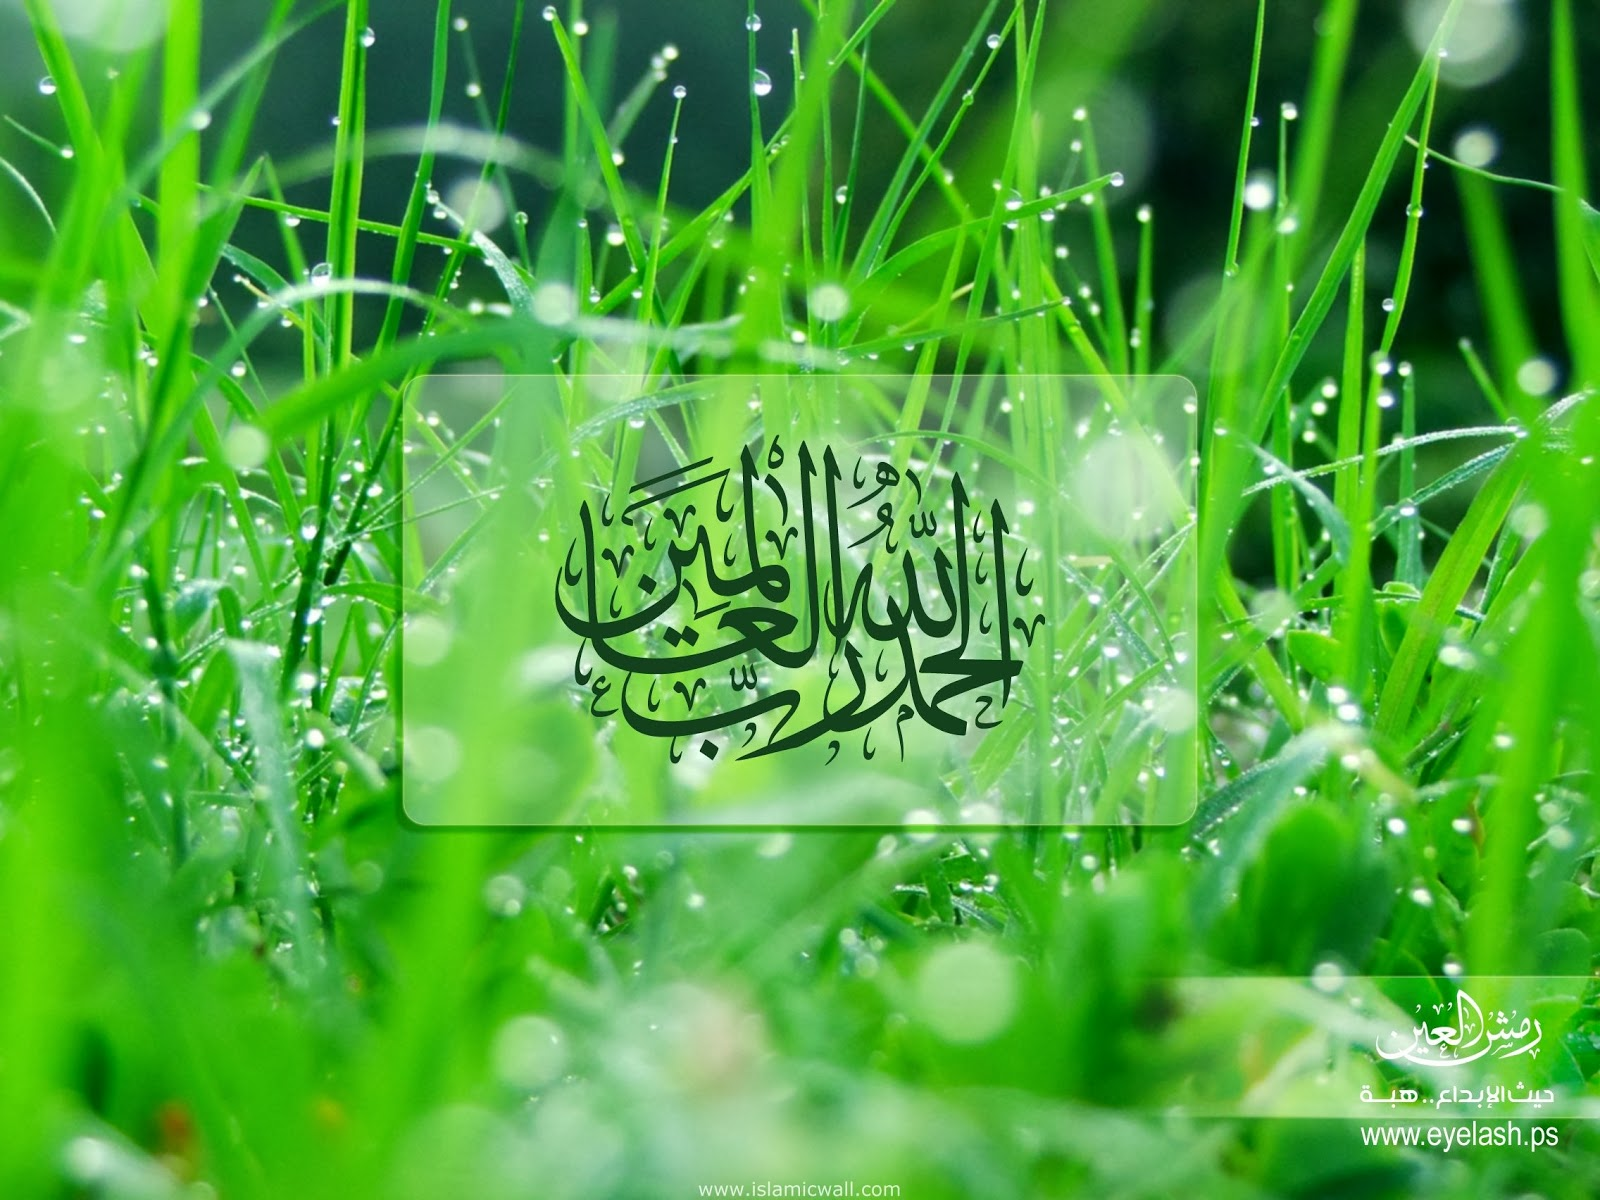 Wallpaper Islamic Informatin Site Wallpapers